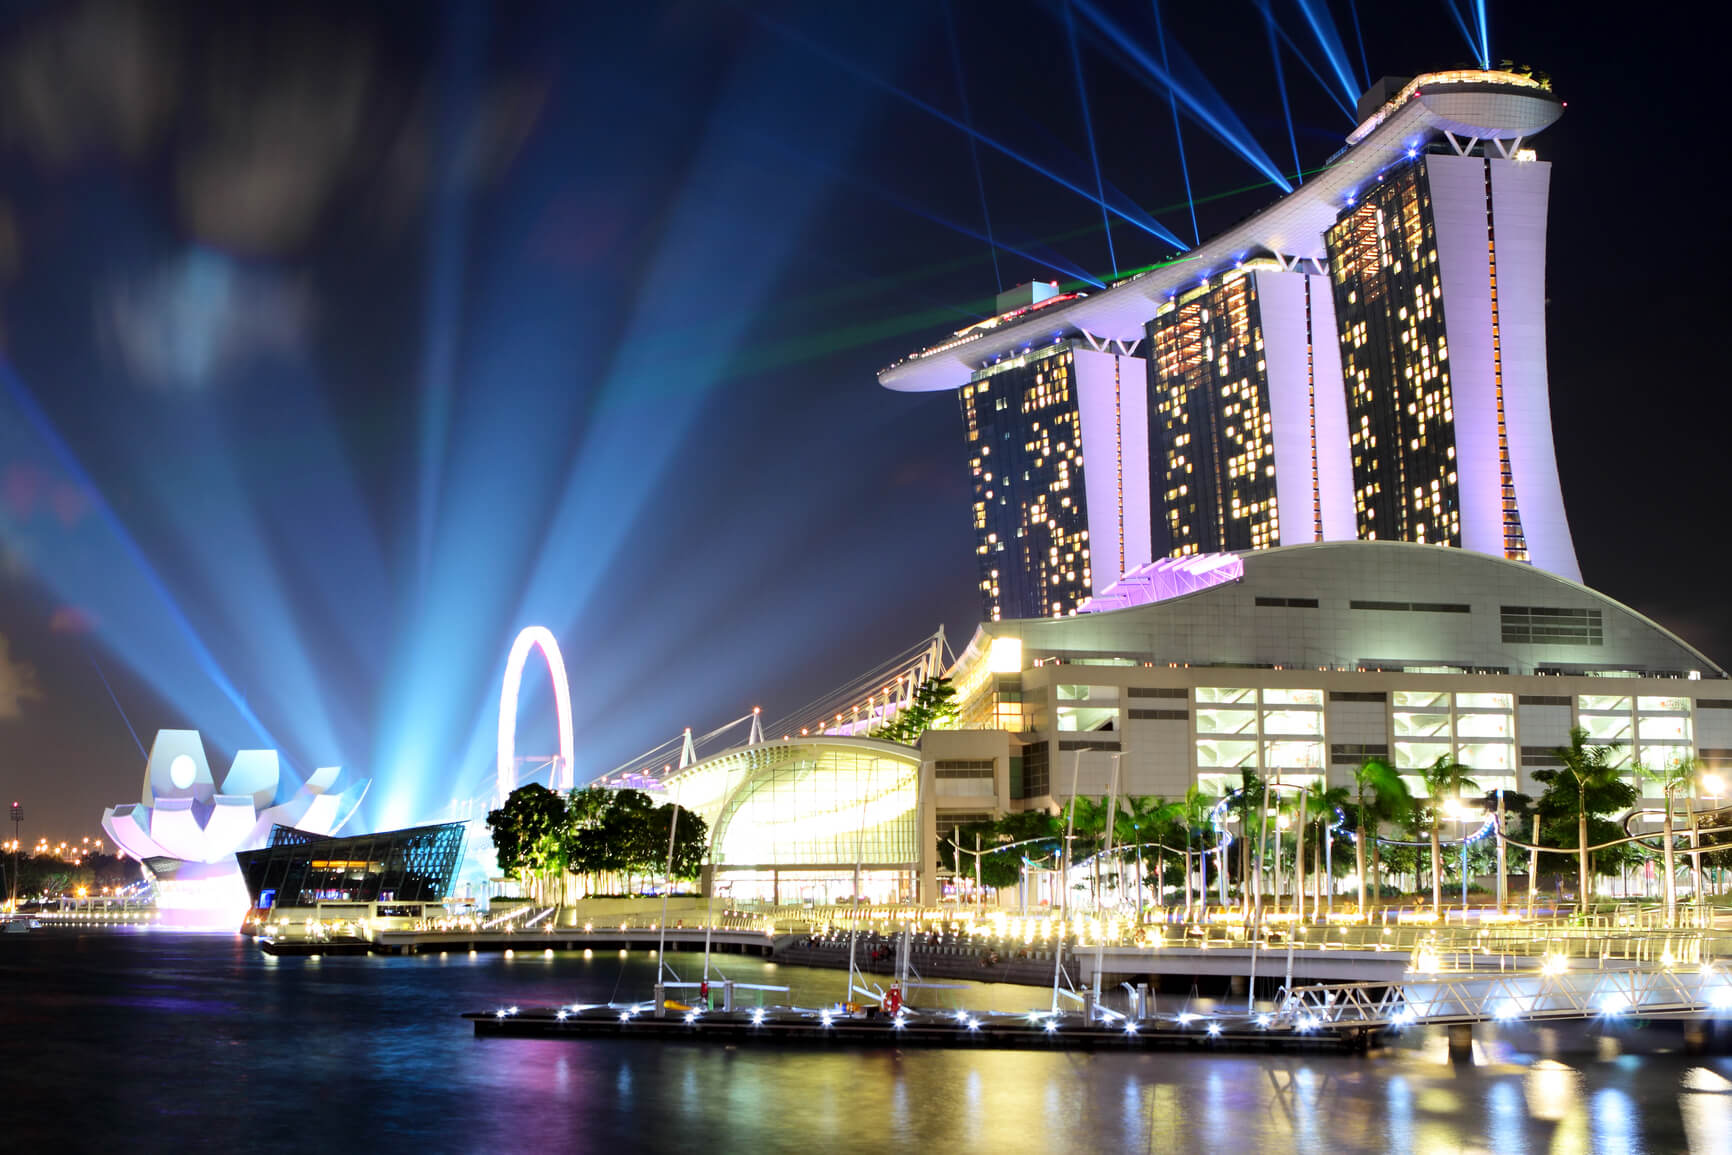 Australian cities to Singapore from only $228 AUD roundtrip